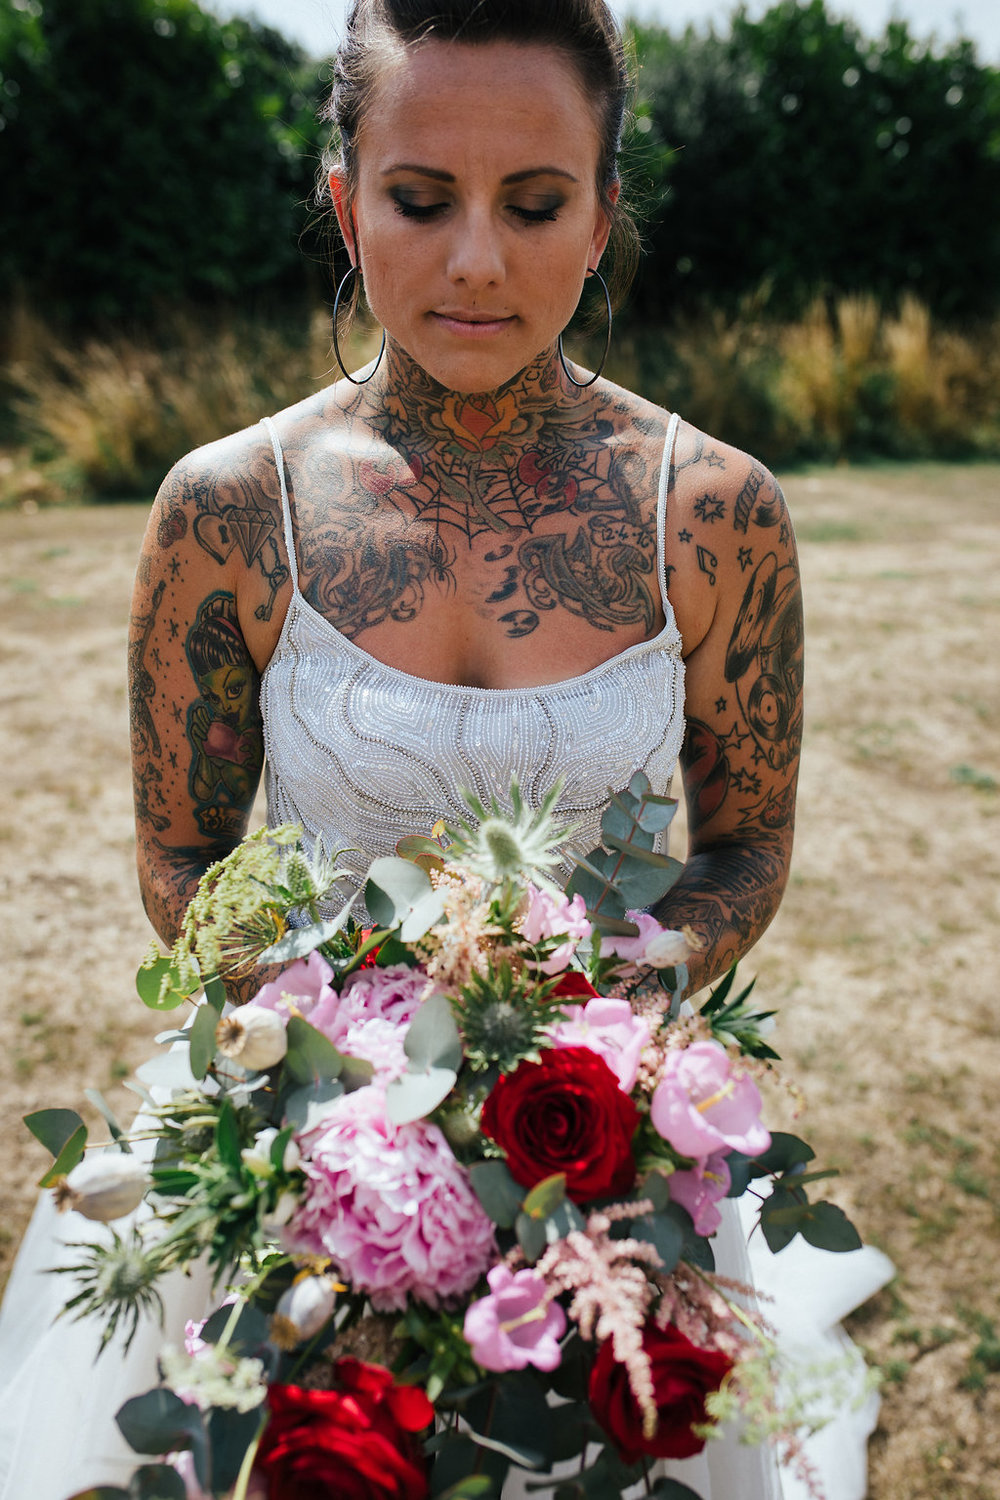 Tattooed bride with wedding bouquet